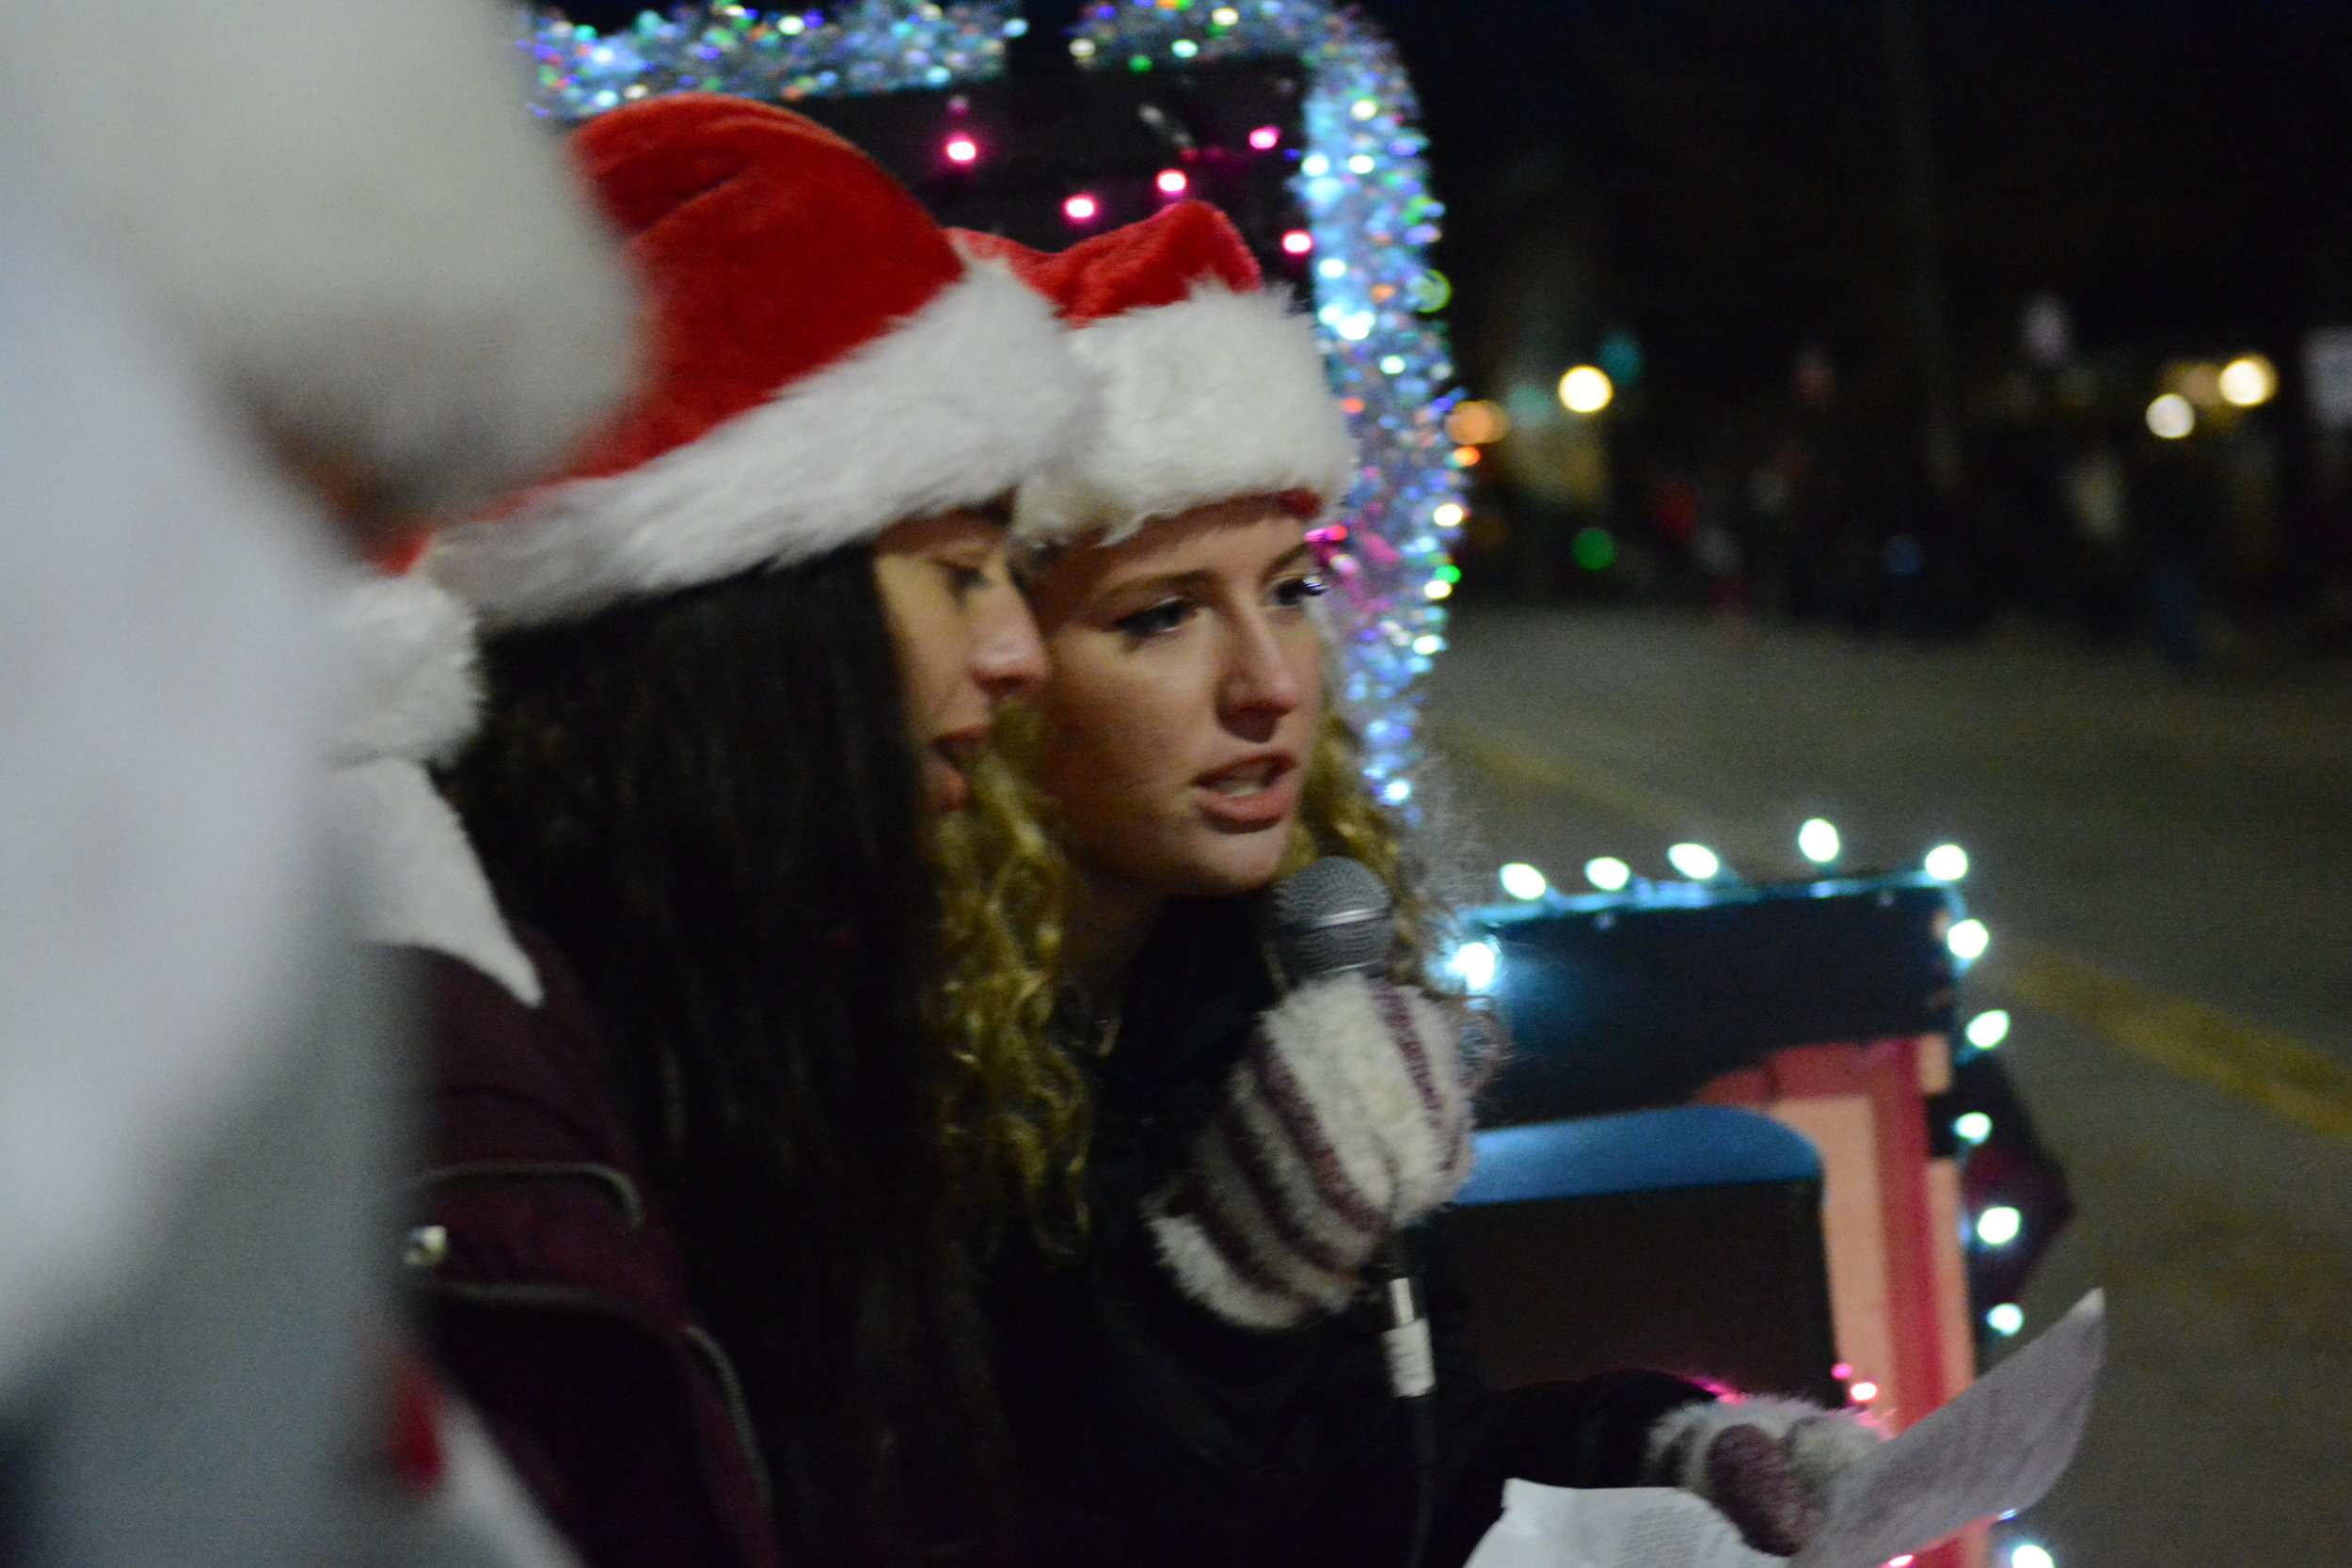 LCS choir members sing during the Parade of Lights in Longmont, CO.